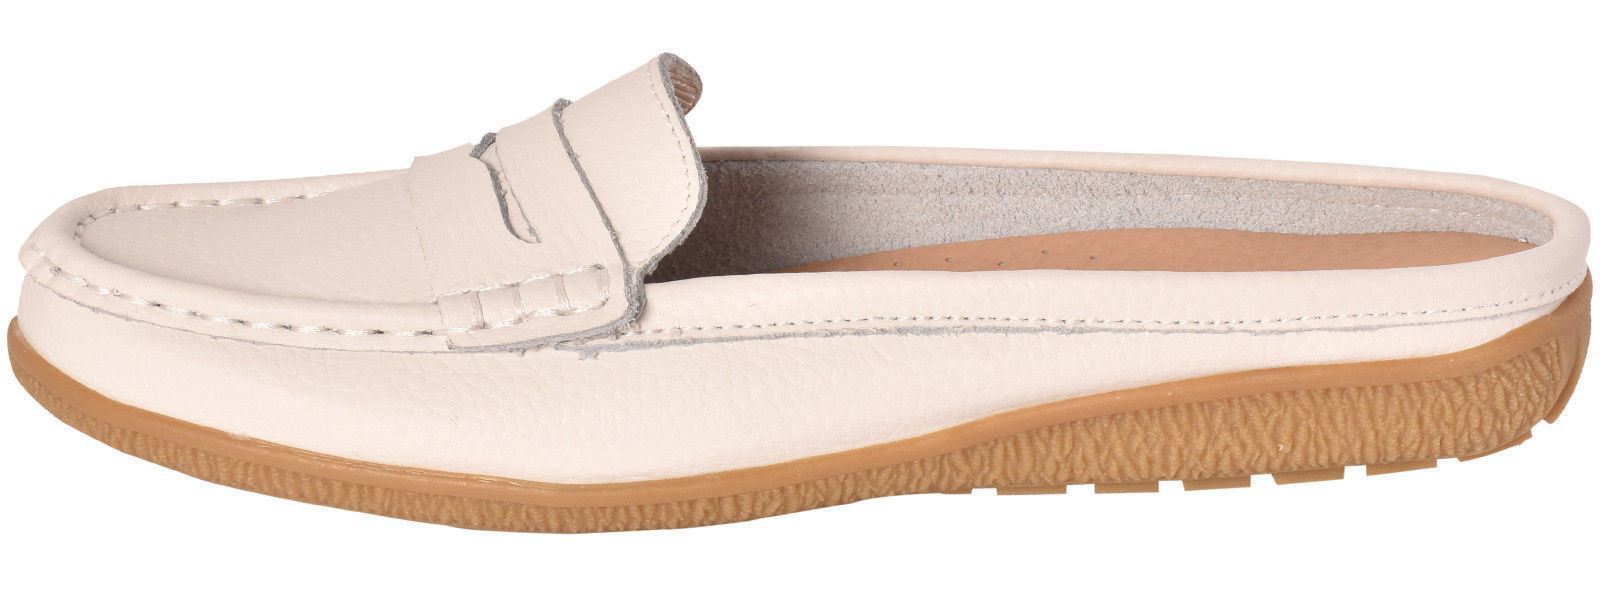 Ladies-Leather-Loafer-Mules-Comfort-Shoes-Womens-Slider-Moccasins-Shoes thumbnail 38